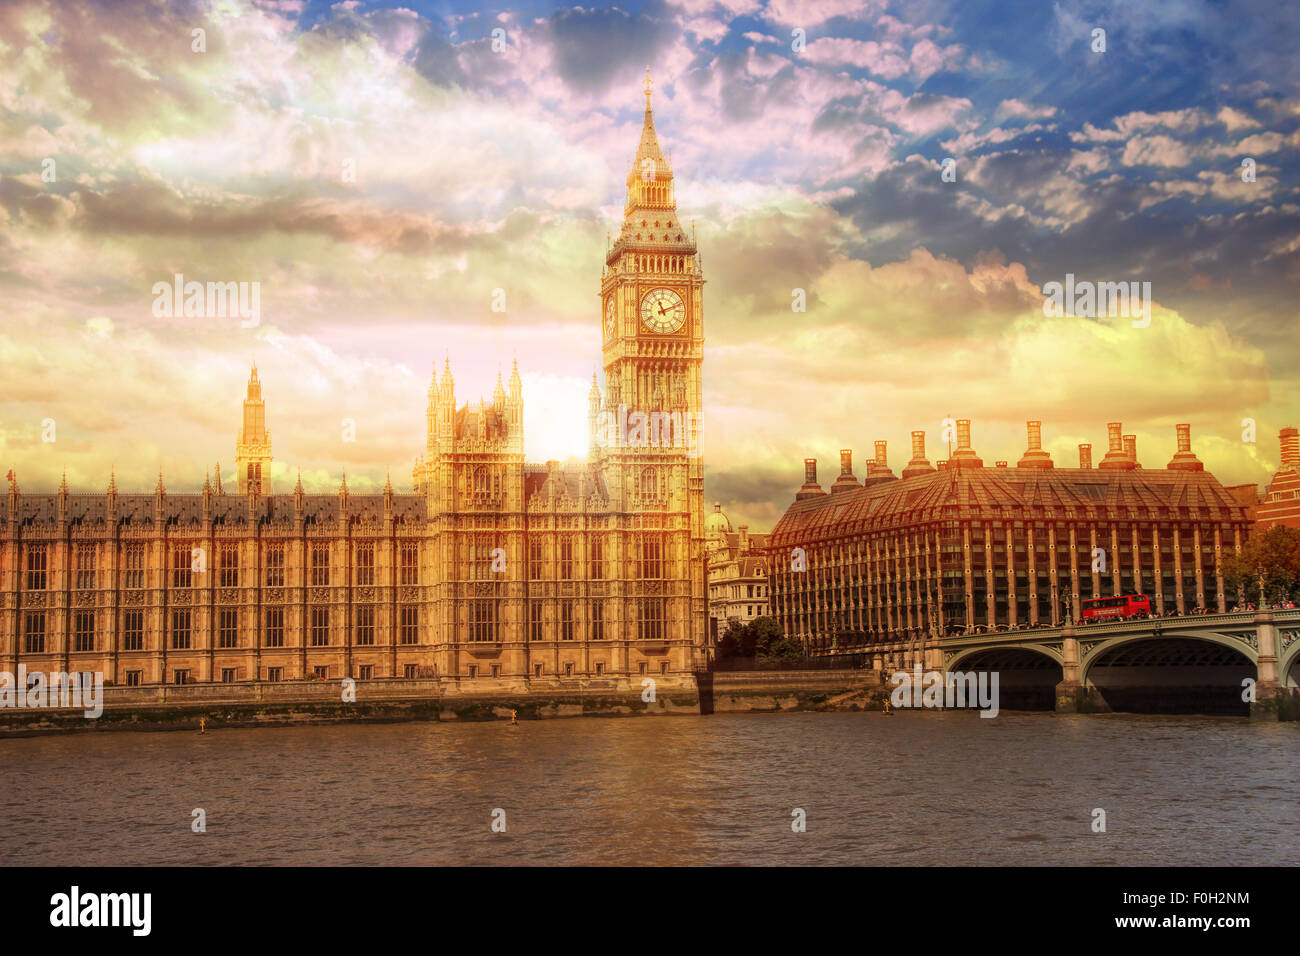 Big Ben in Westminster Palace,London - Stock Image